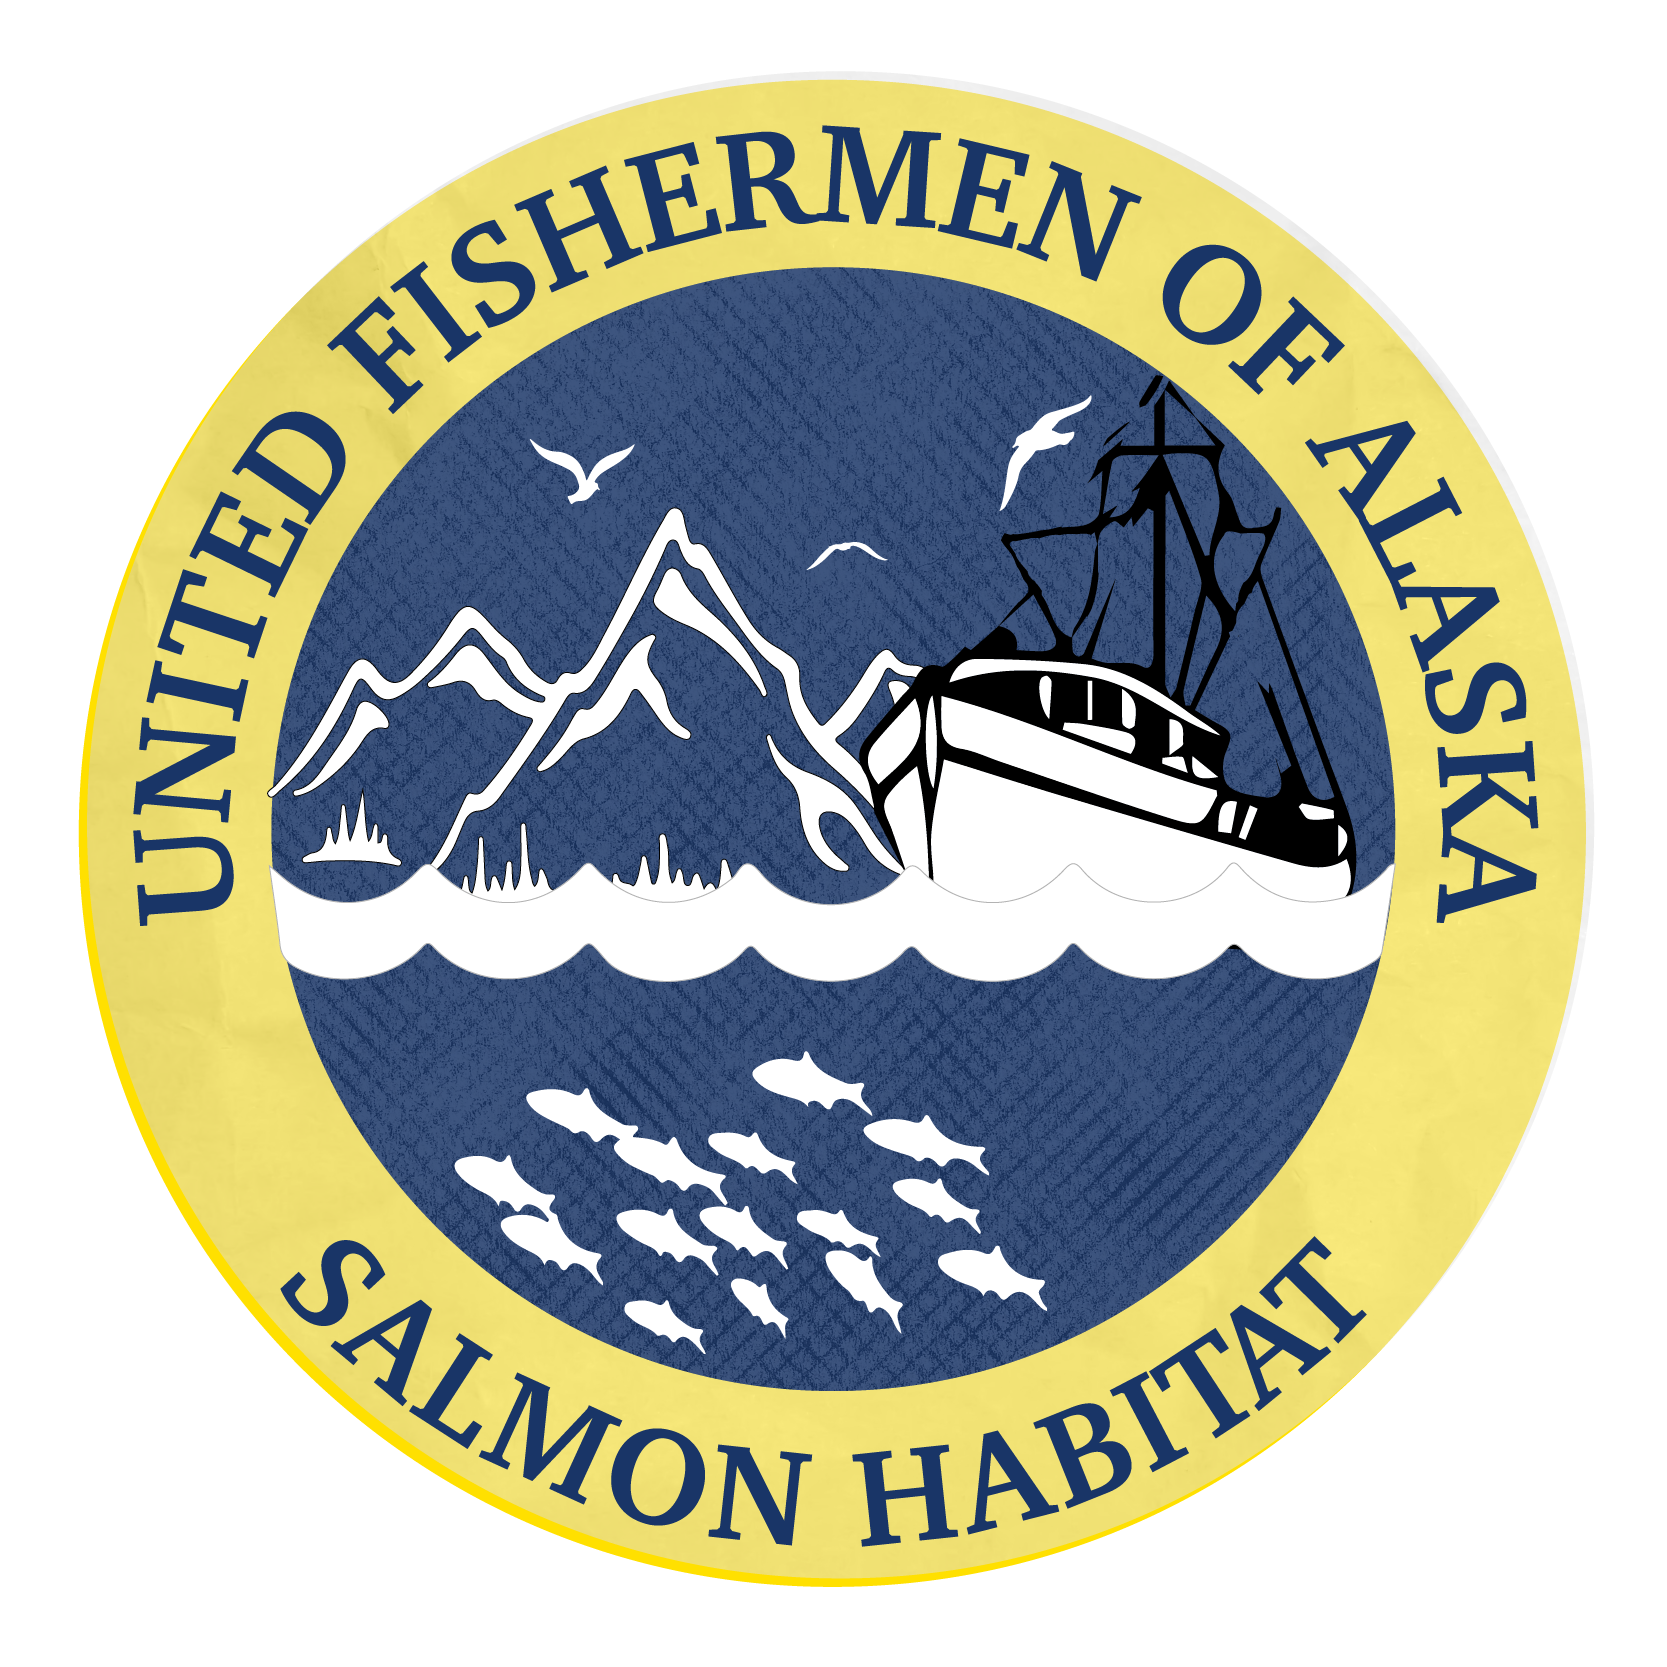 Salmon Habitat Information Program (SHIP) | United Fishermen